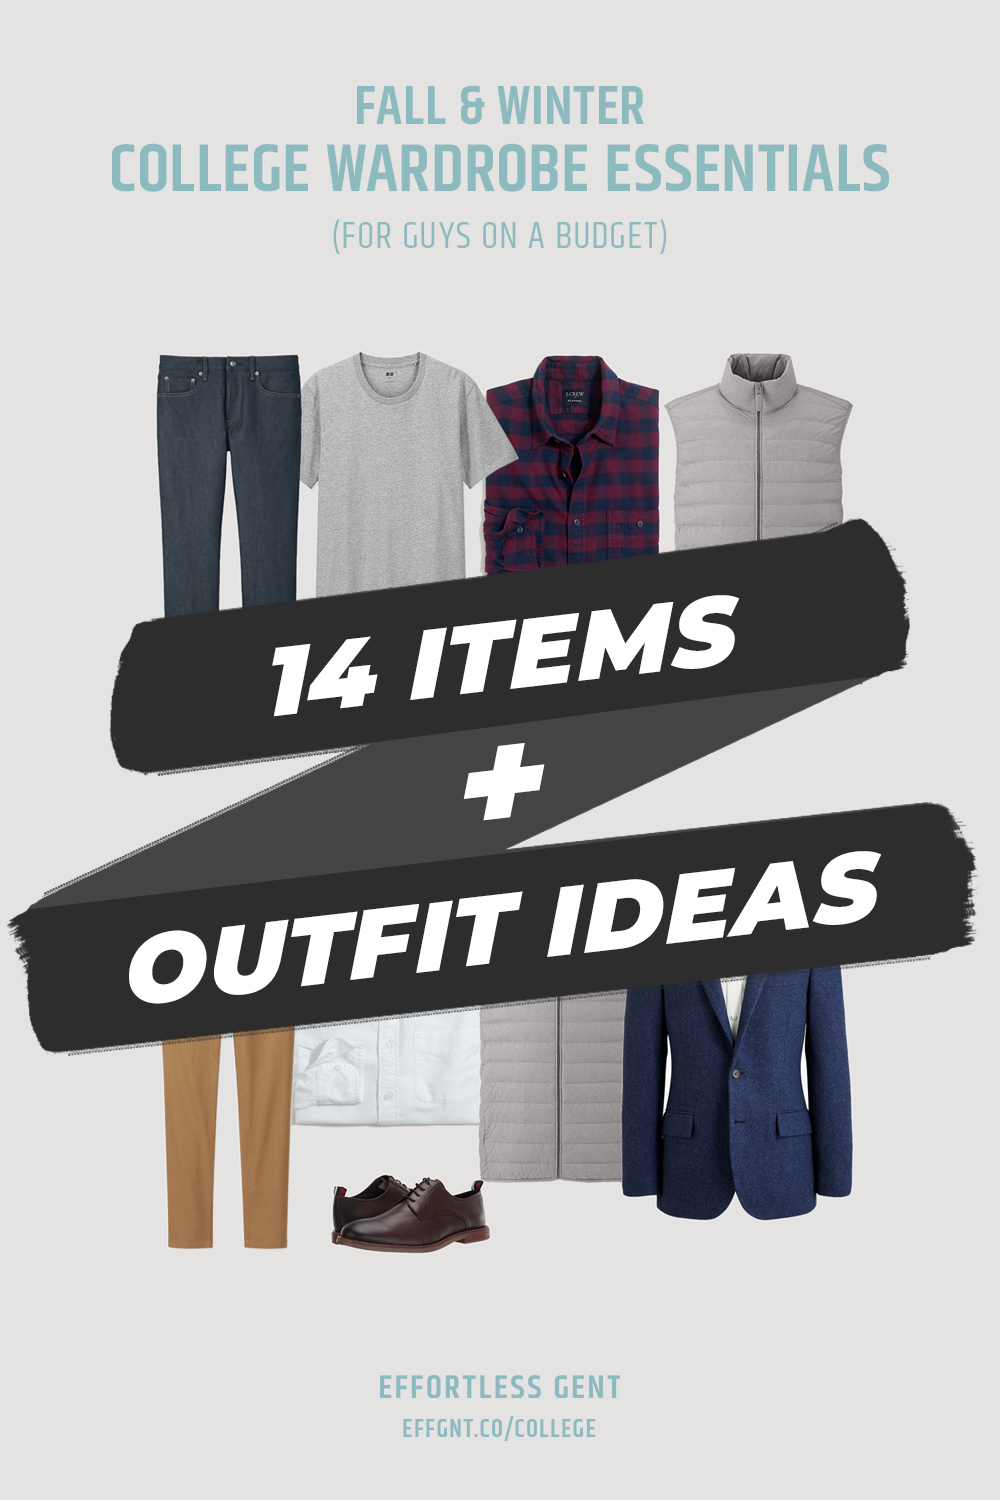 Teaser image for college wardrobe essentials infographic